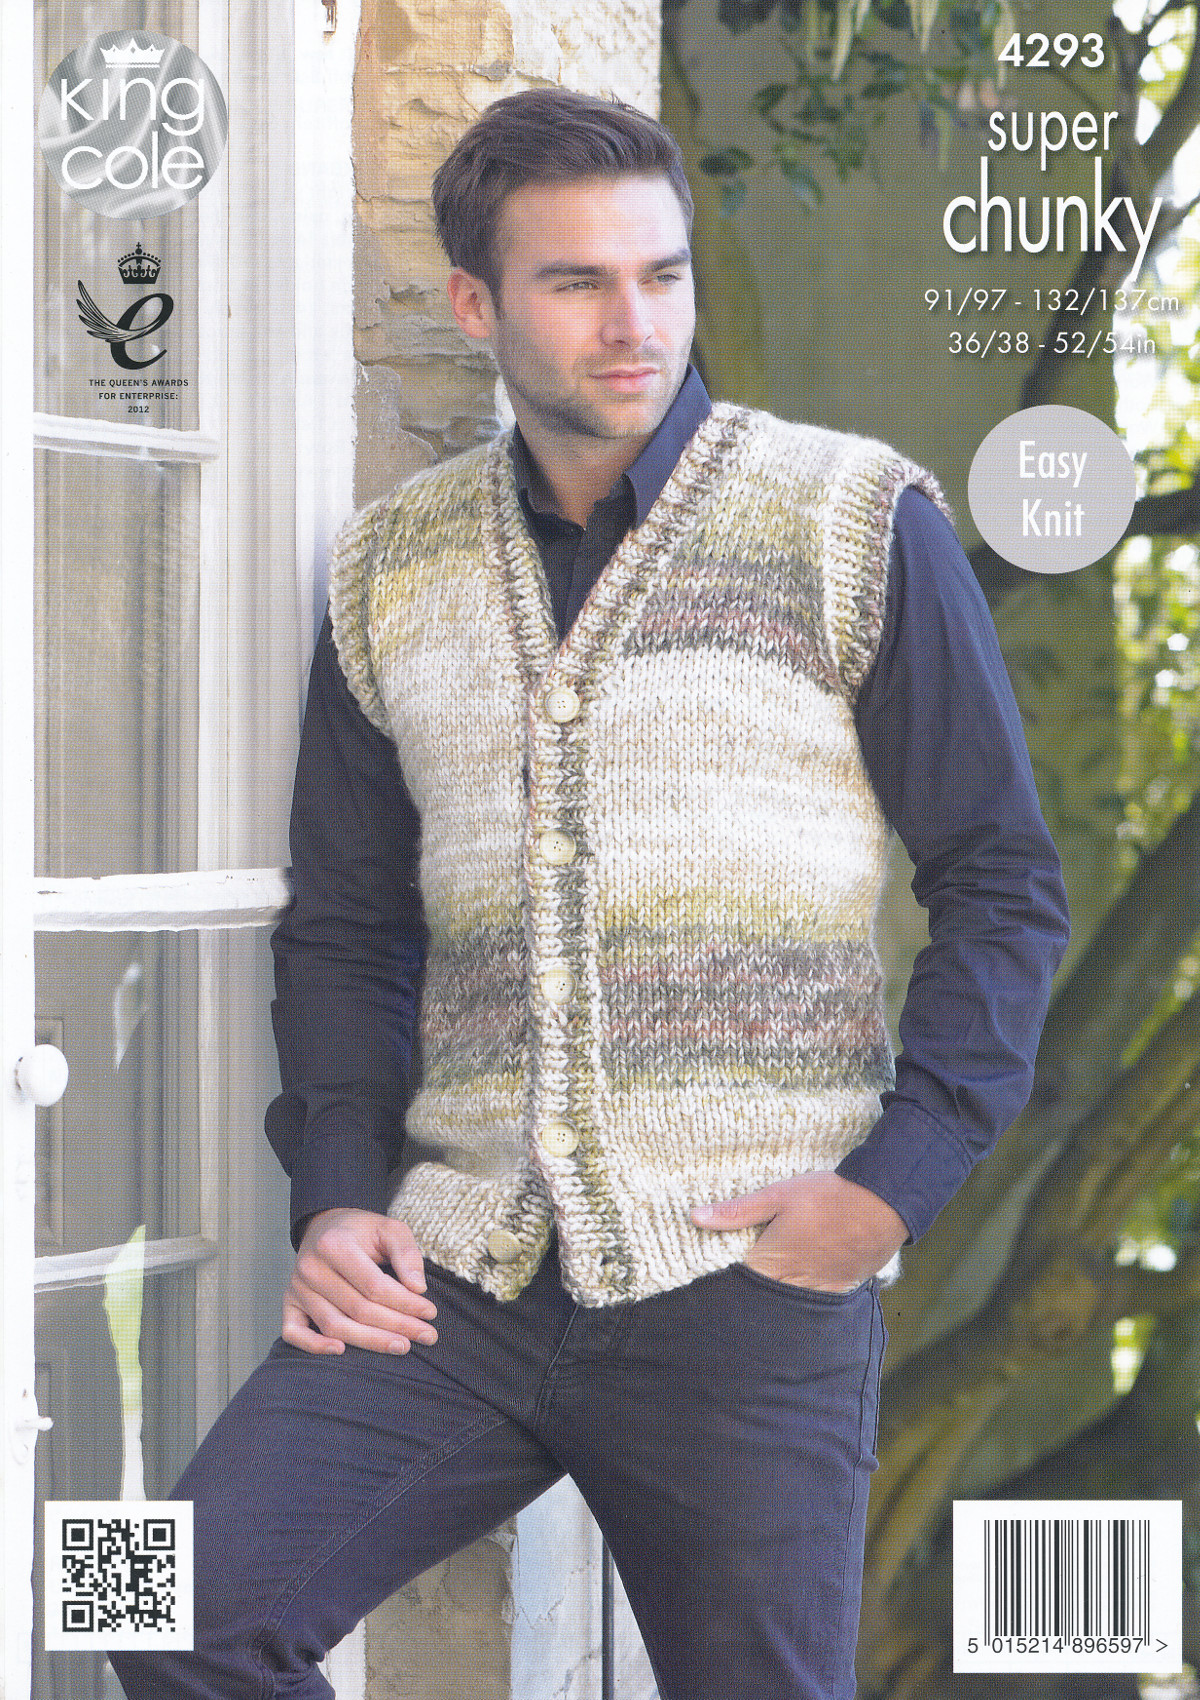 King Cole Mens Super Chunky Knitting Pattern Easy Knit Jumper ...